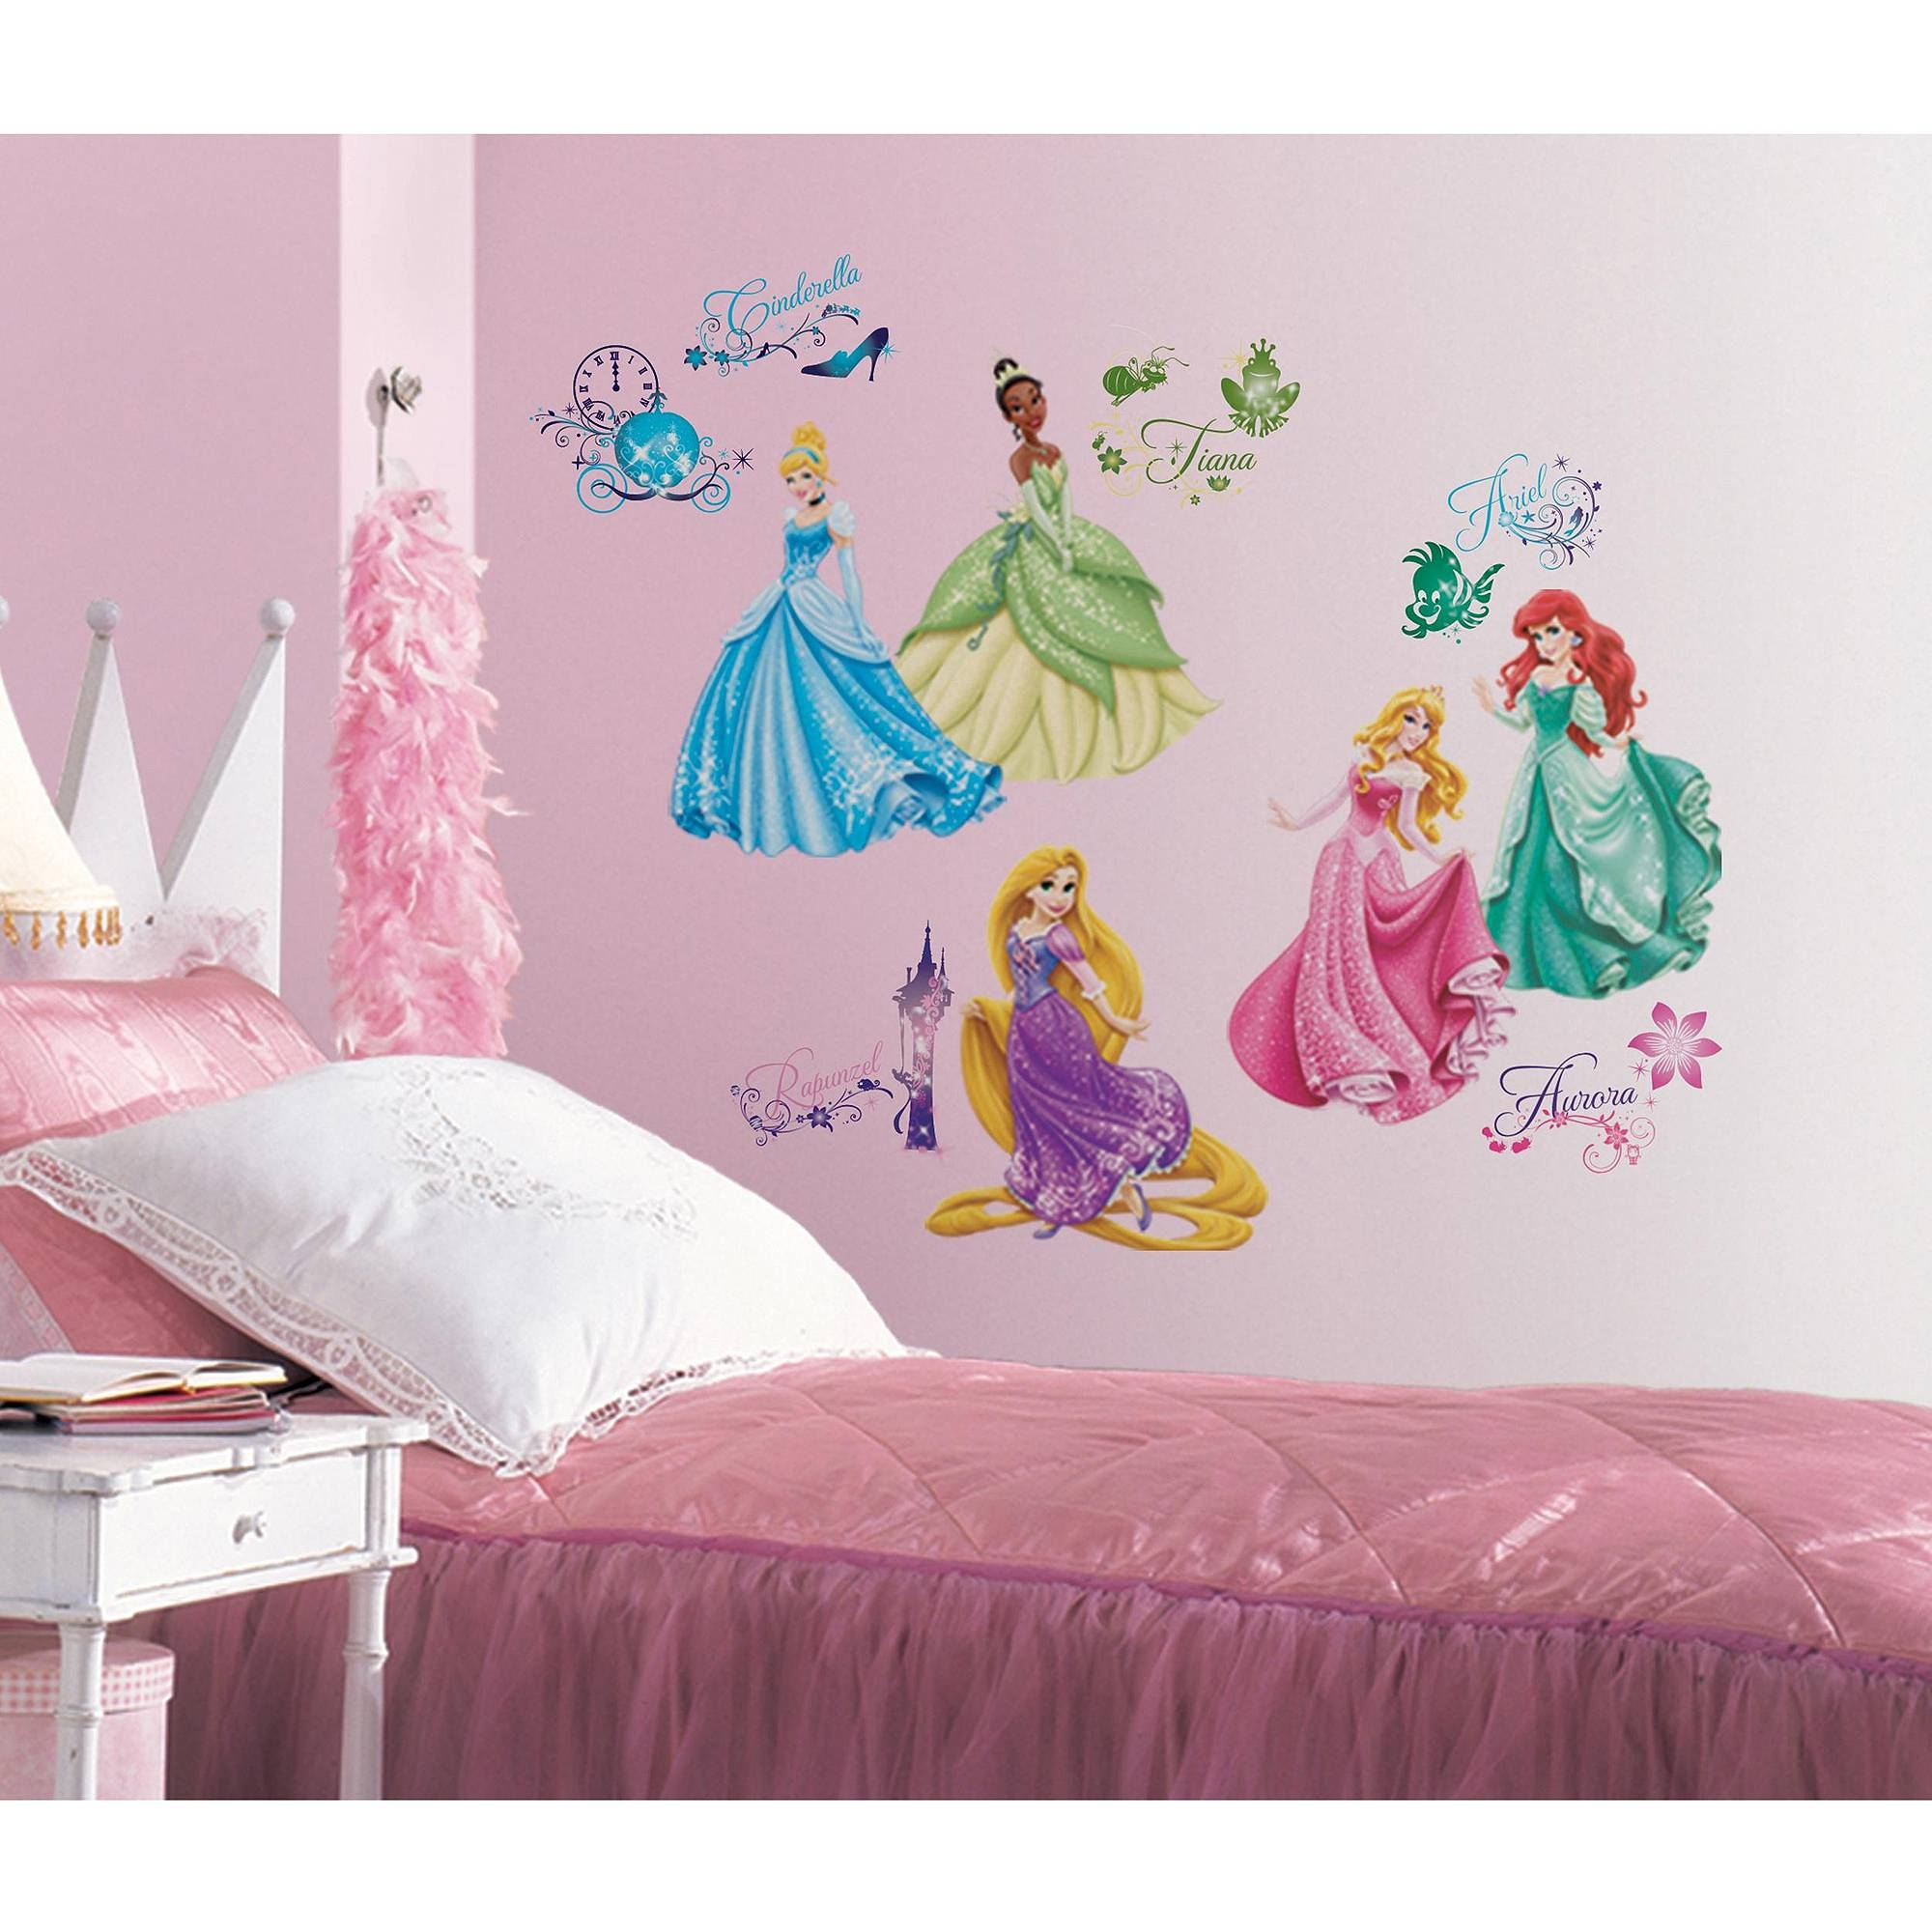 Disney Princess Royal Debut Peel And Stick Wall Decals – Walmart Throughout 2018 Walmart Wall Stickers (View 6 of 25)